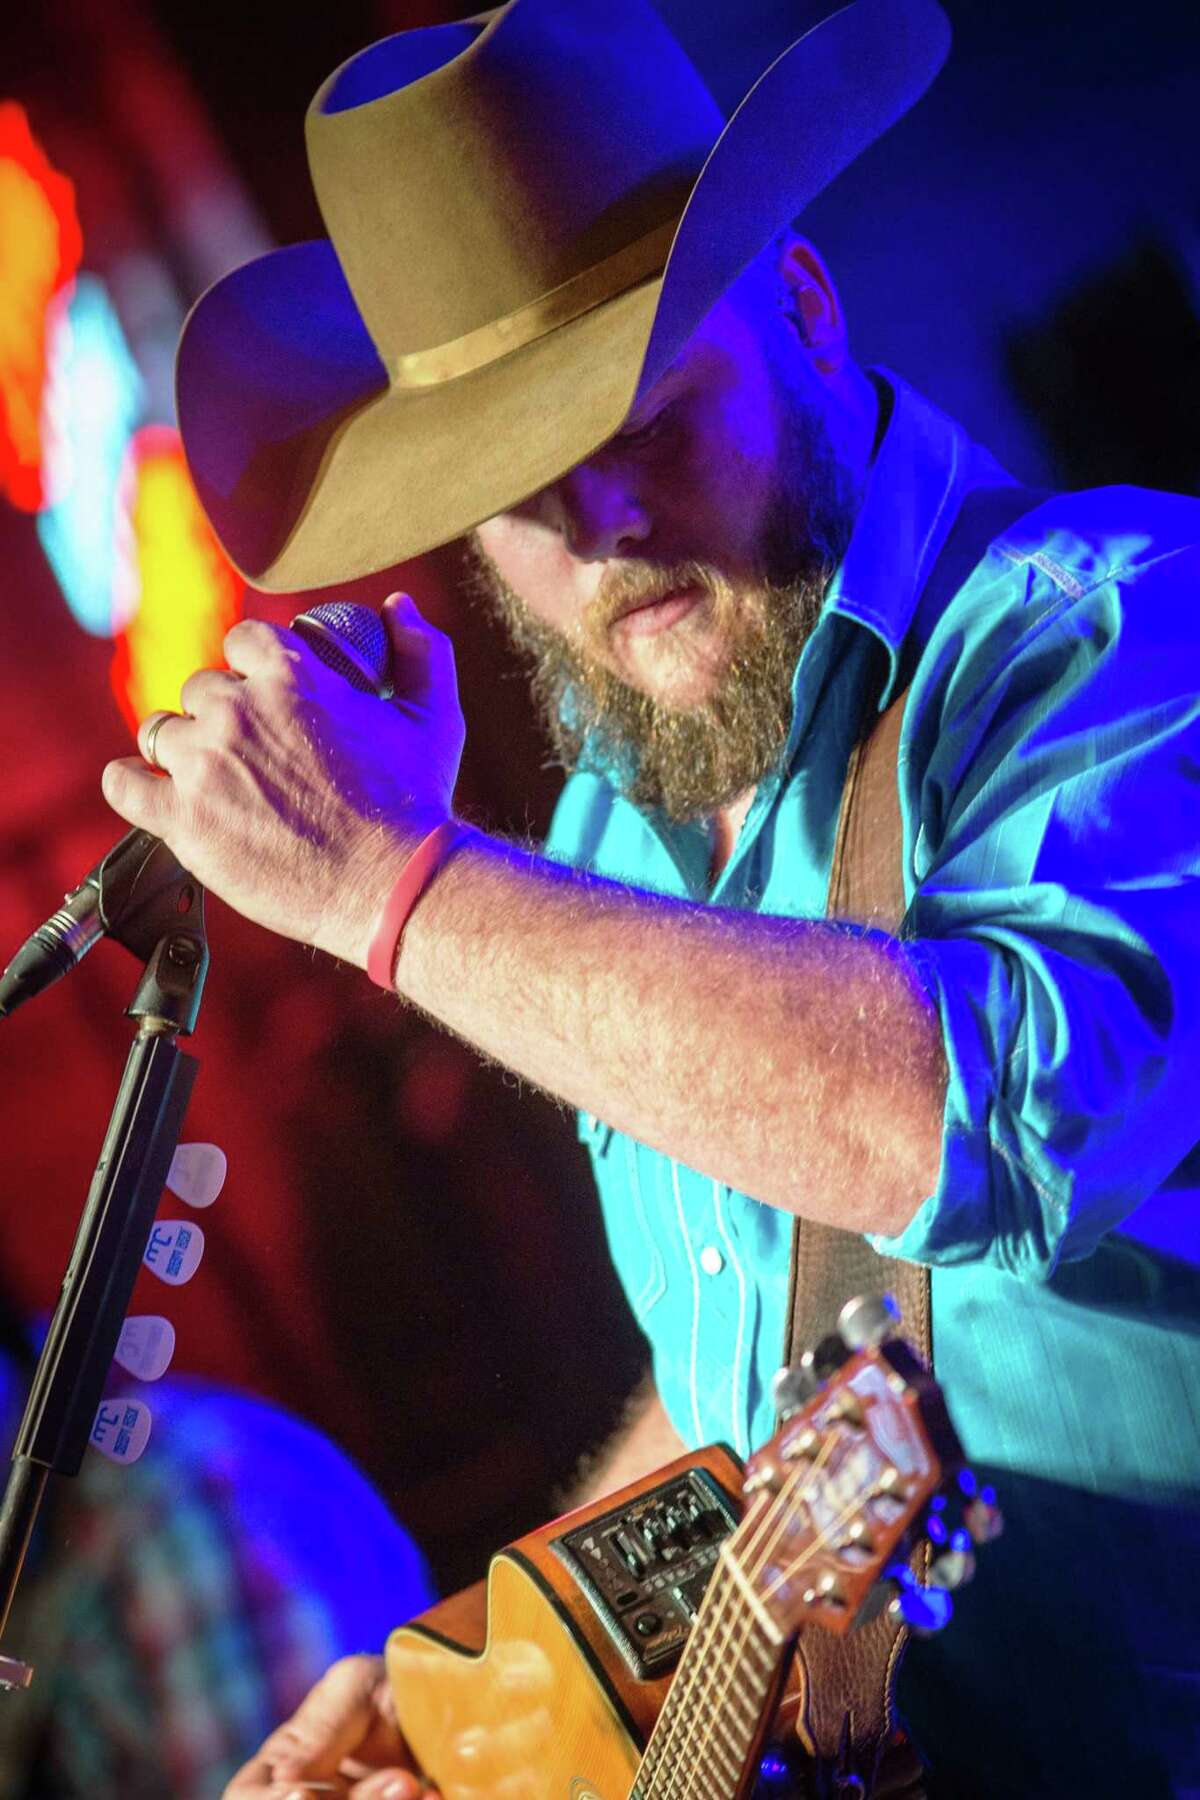 Texas singer-songwriter Josh Ward will perform June 5 at Sawyer Park Icehouse in Spring.